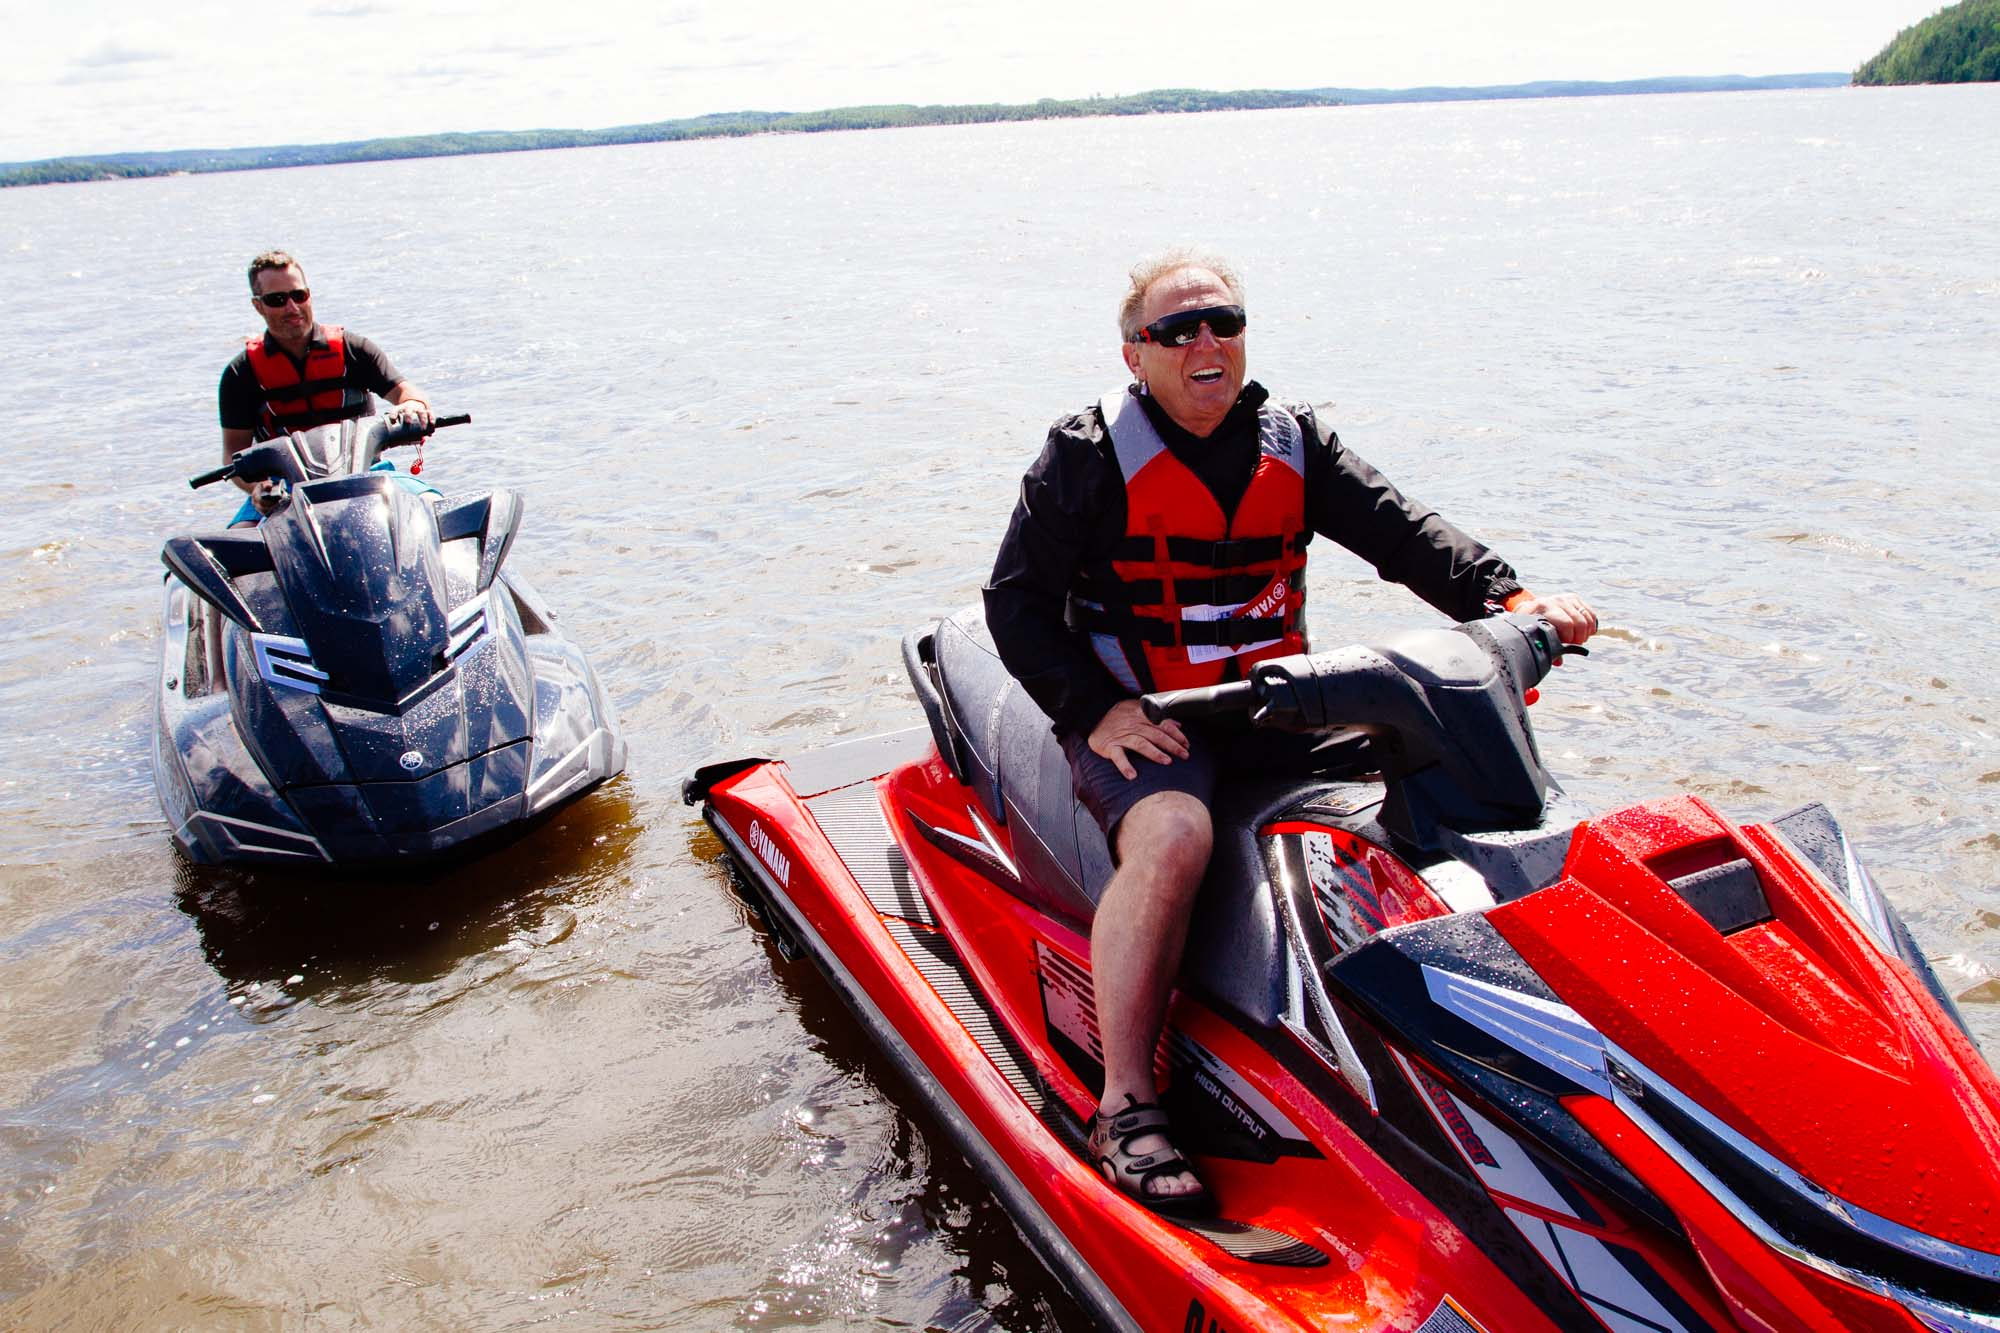 yamaha pwcs on lake temiskaming